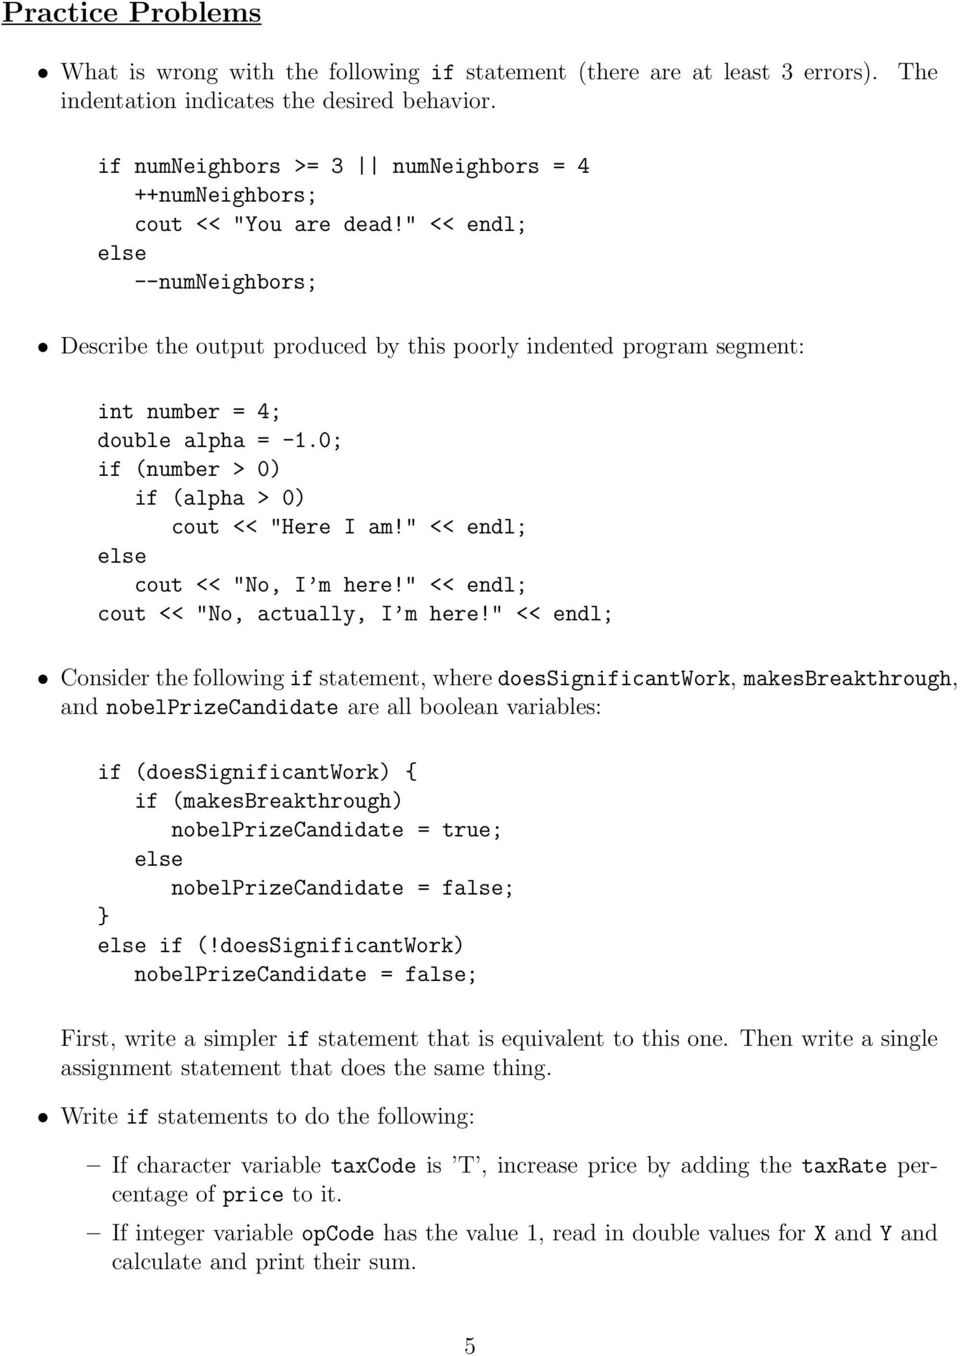 The if Statement and Practice Problems - PDF